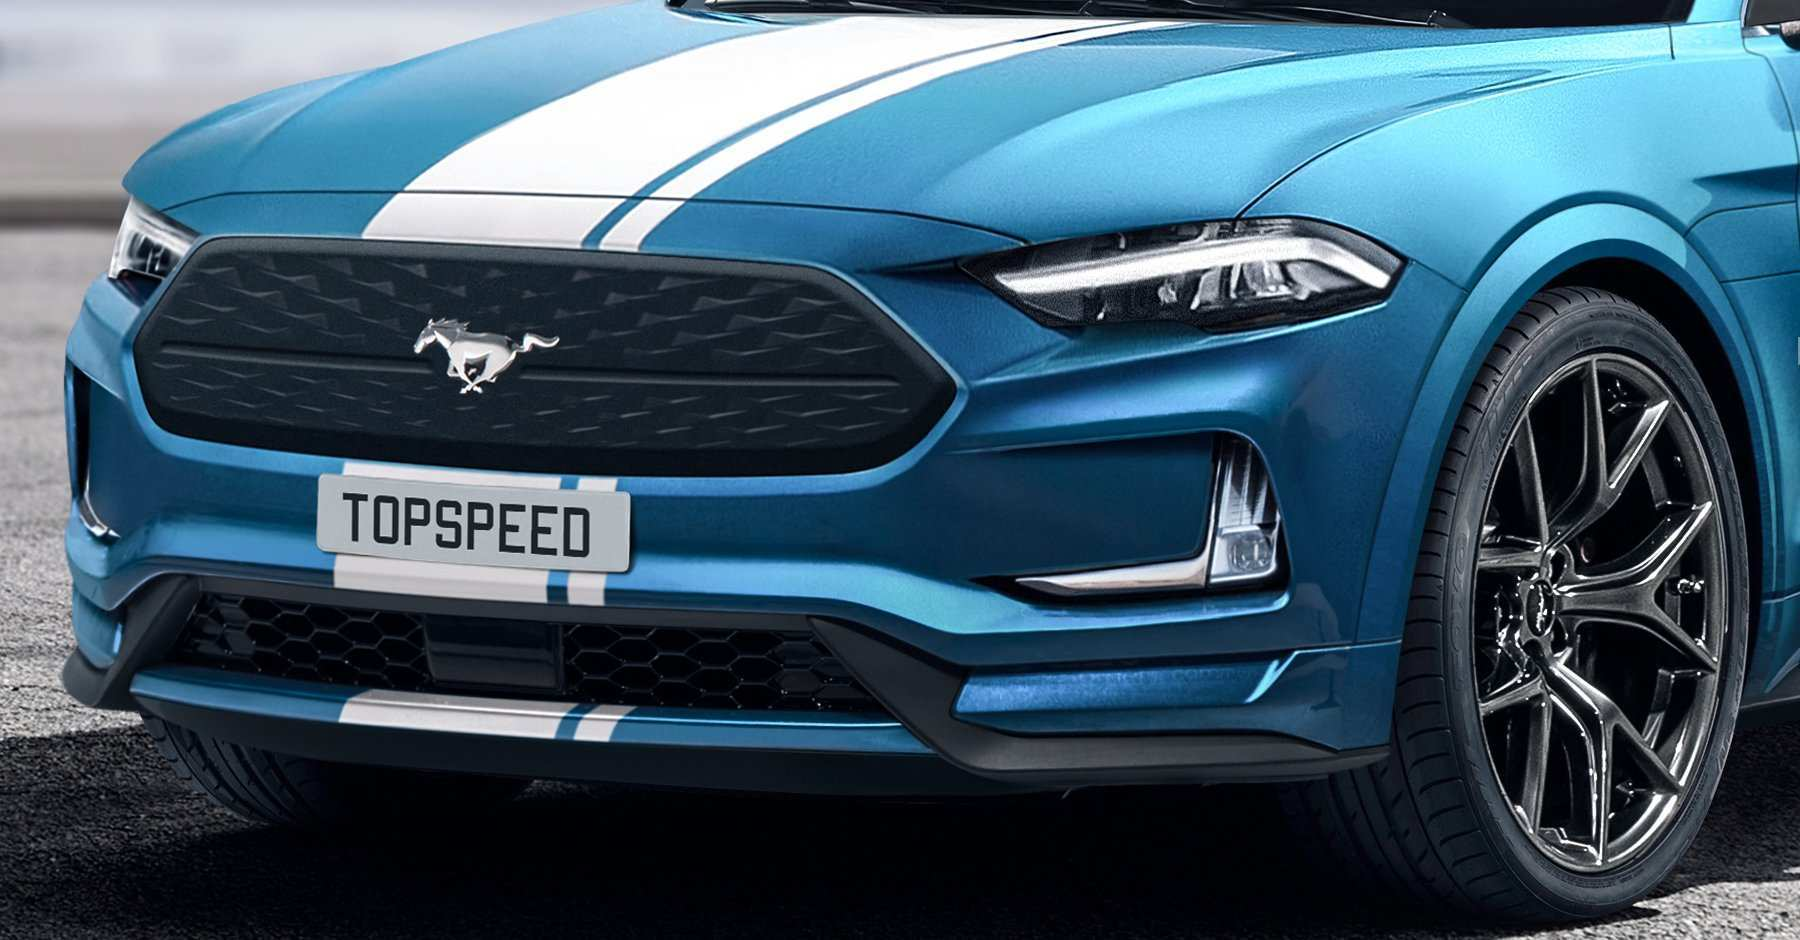 23 Great 2020 Ford Mustang Mach 1 Concept with 2020 Ford Mustang Mach 1